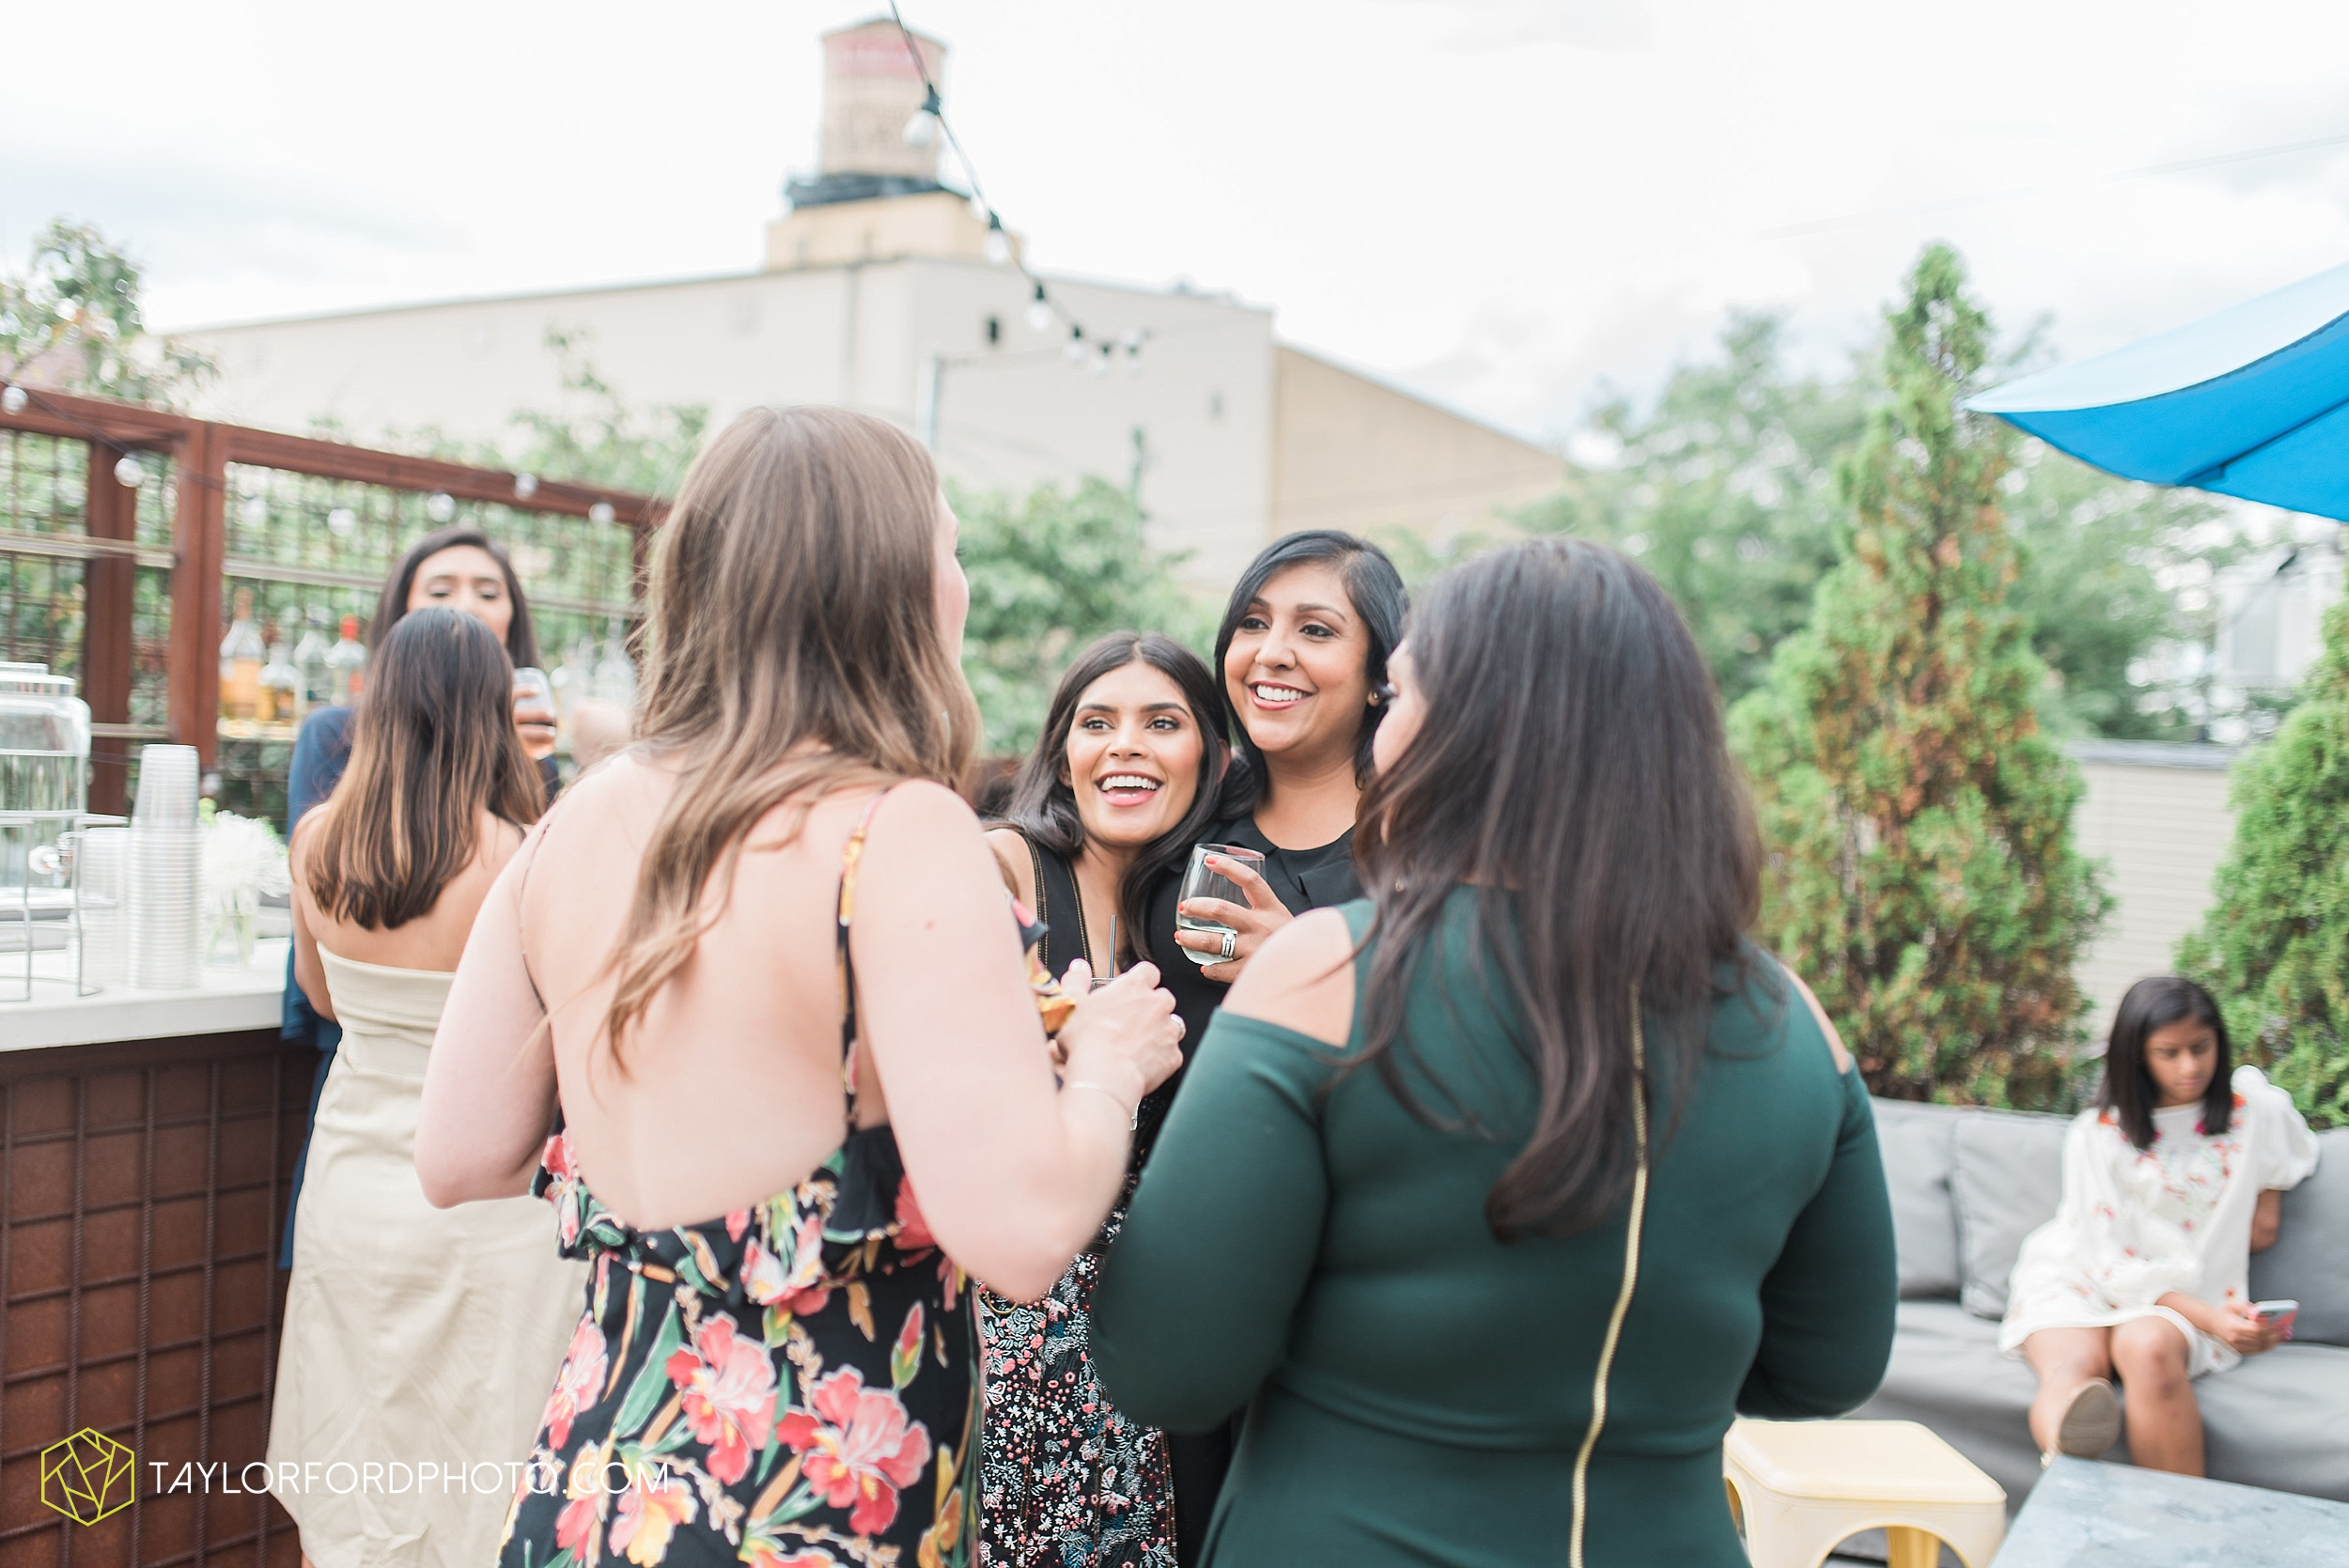 chicago-illinois-bridal-shower-wedding-engagement-photographer-Taylor-Ford-Photography-the-little-goat-diner-rooftop-indian-ceremony_5112.jpg